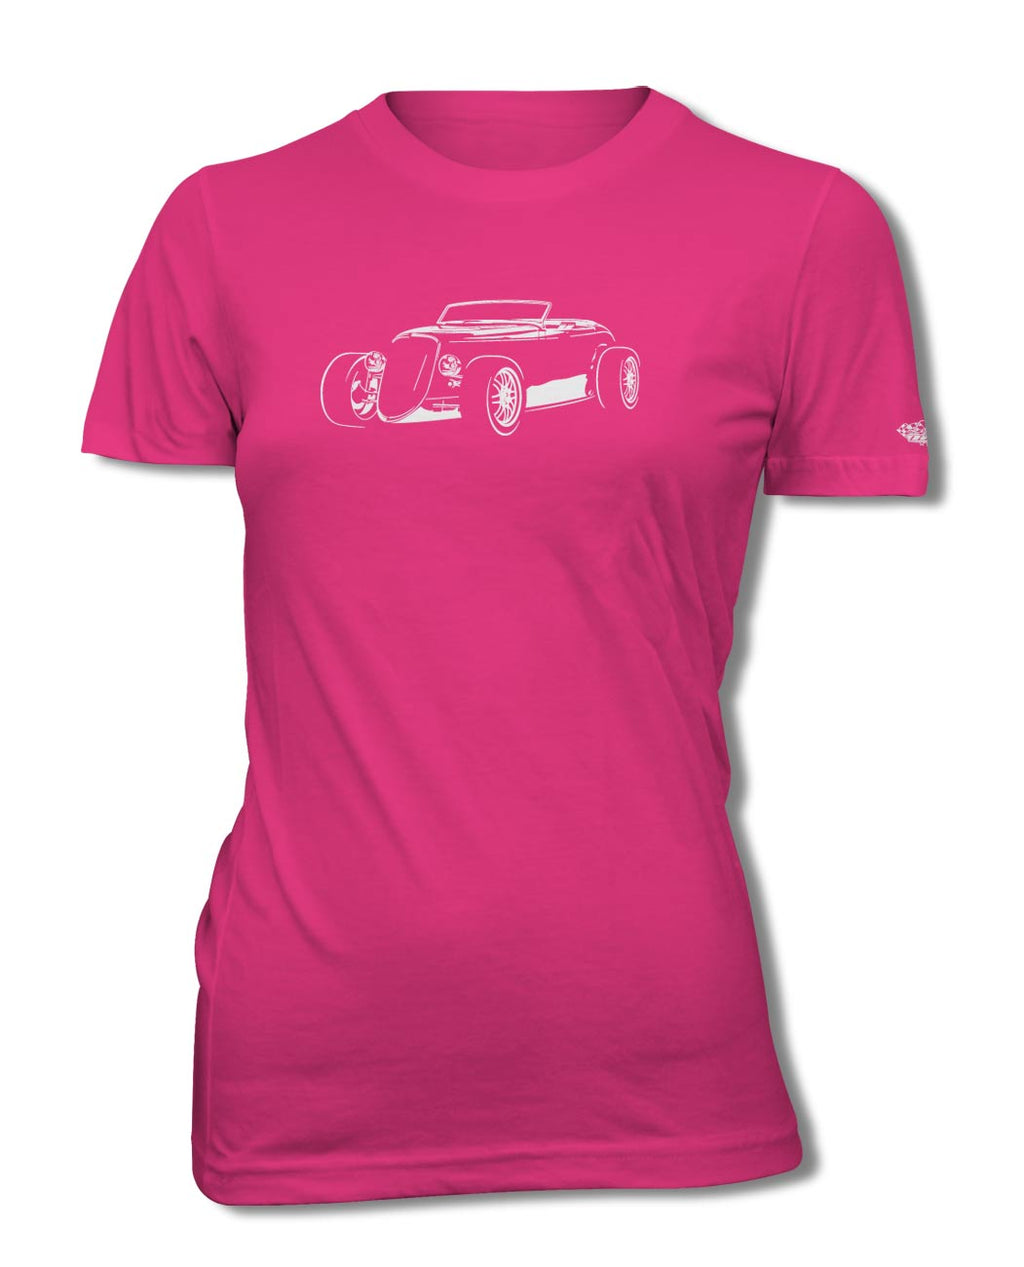 1934 Ford Coupe Hi Boy 3/4 T-Shirt - Women - Spotlights